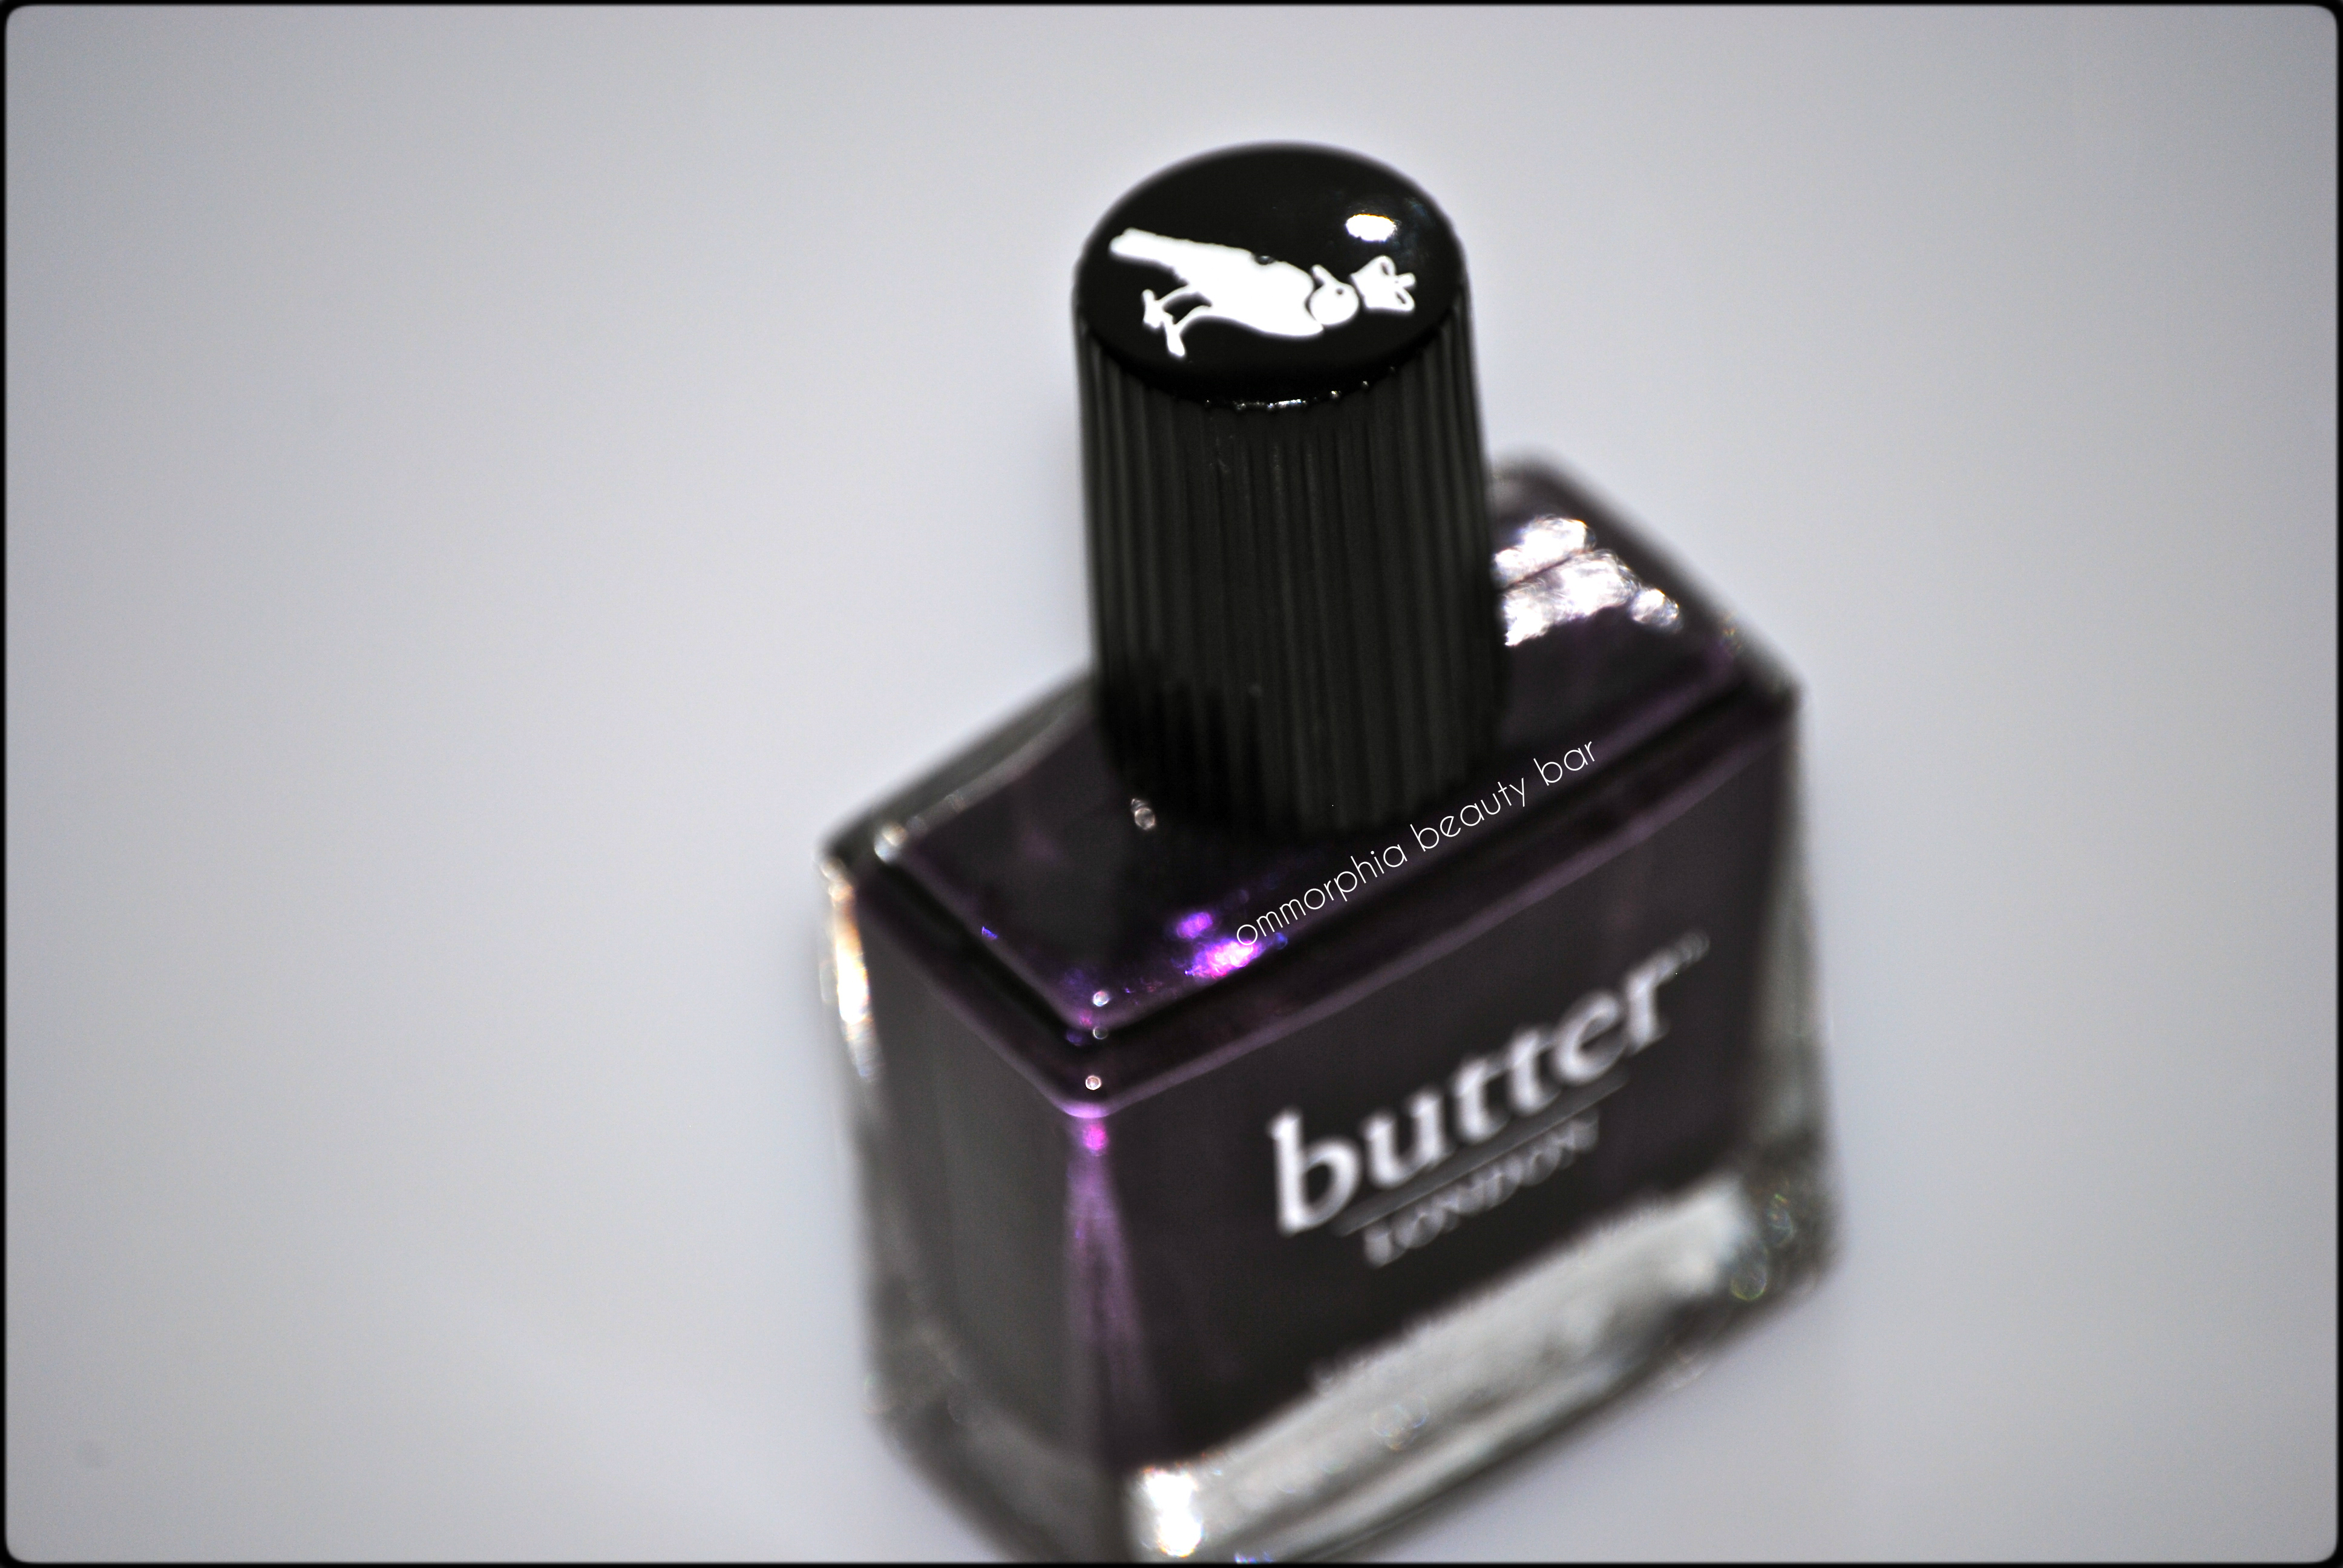 Butter London – Pitter Patter (Limited Edition)